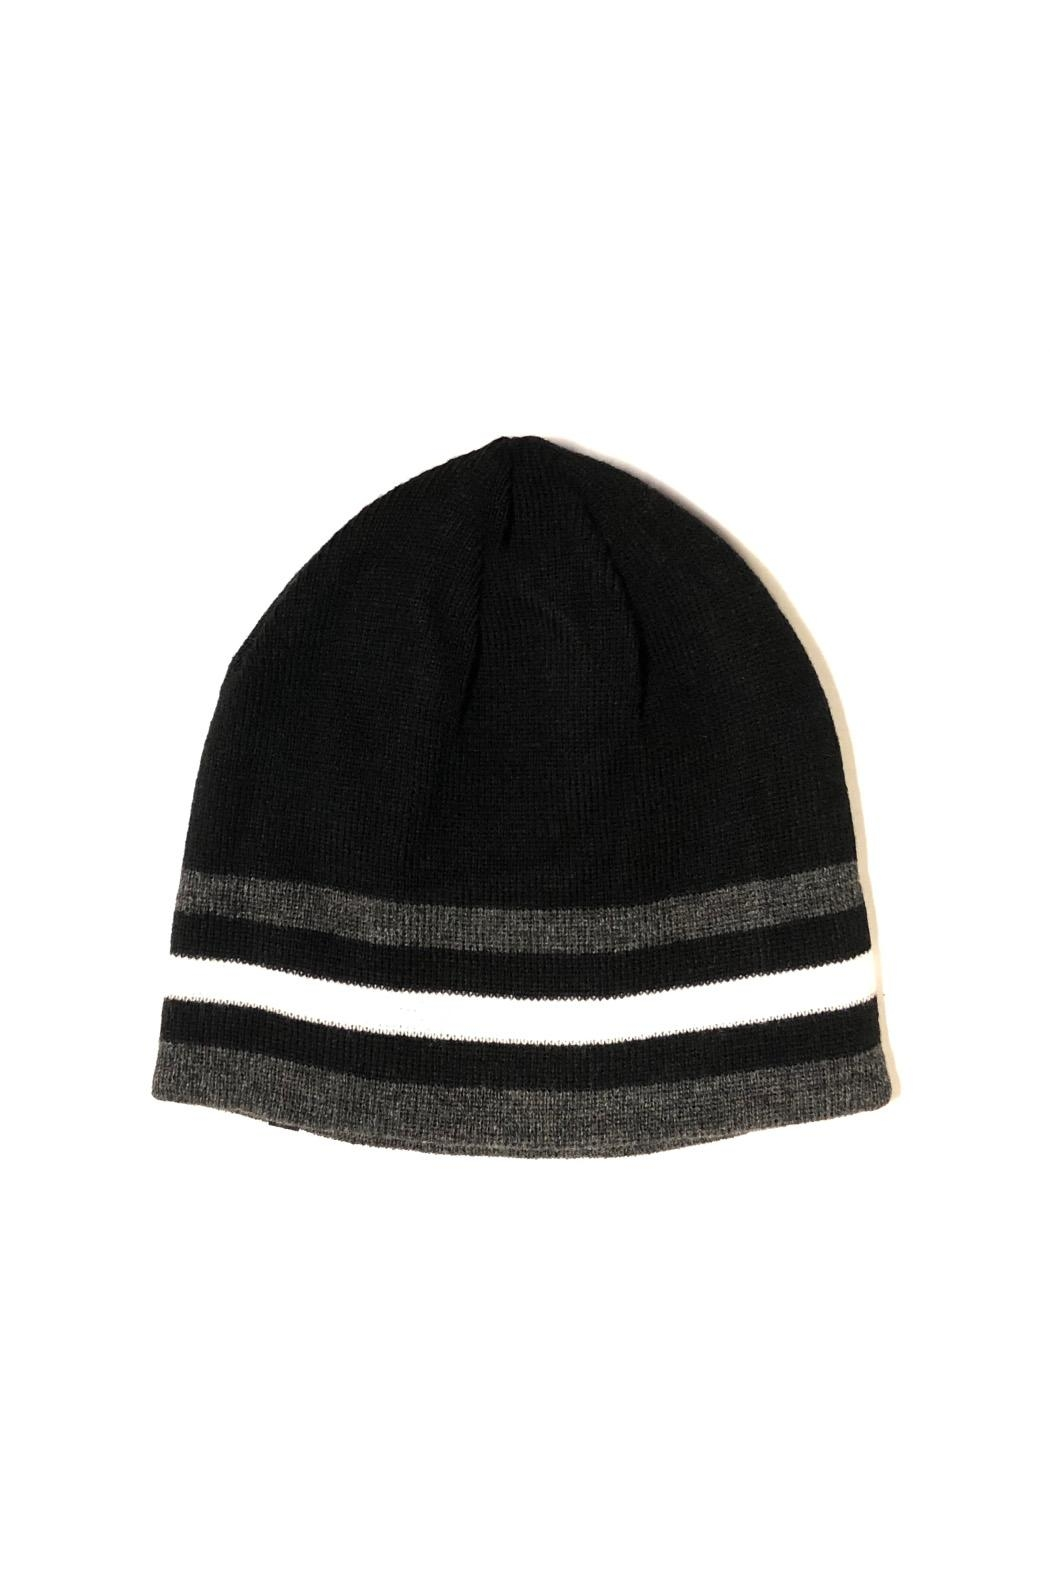 C.C Beanie Multi-Line Sporty Beanie - Front Cropped Image